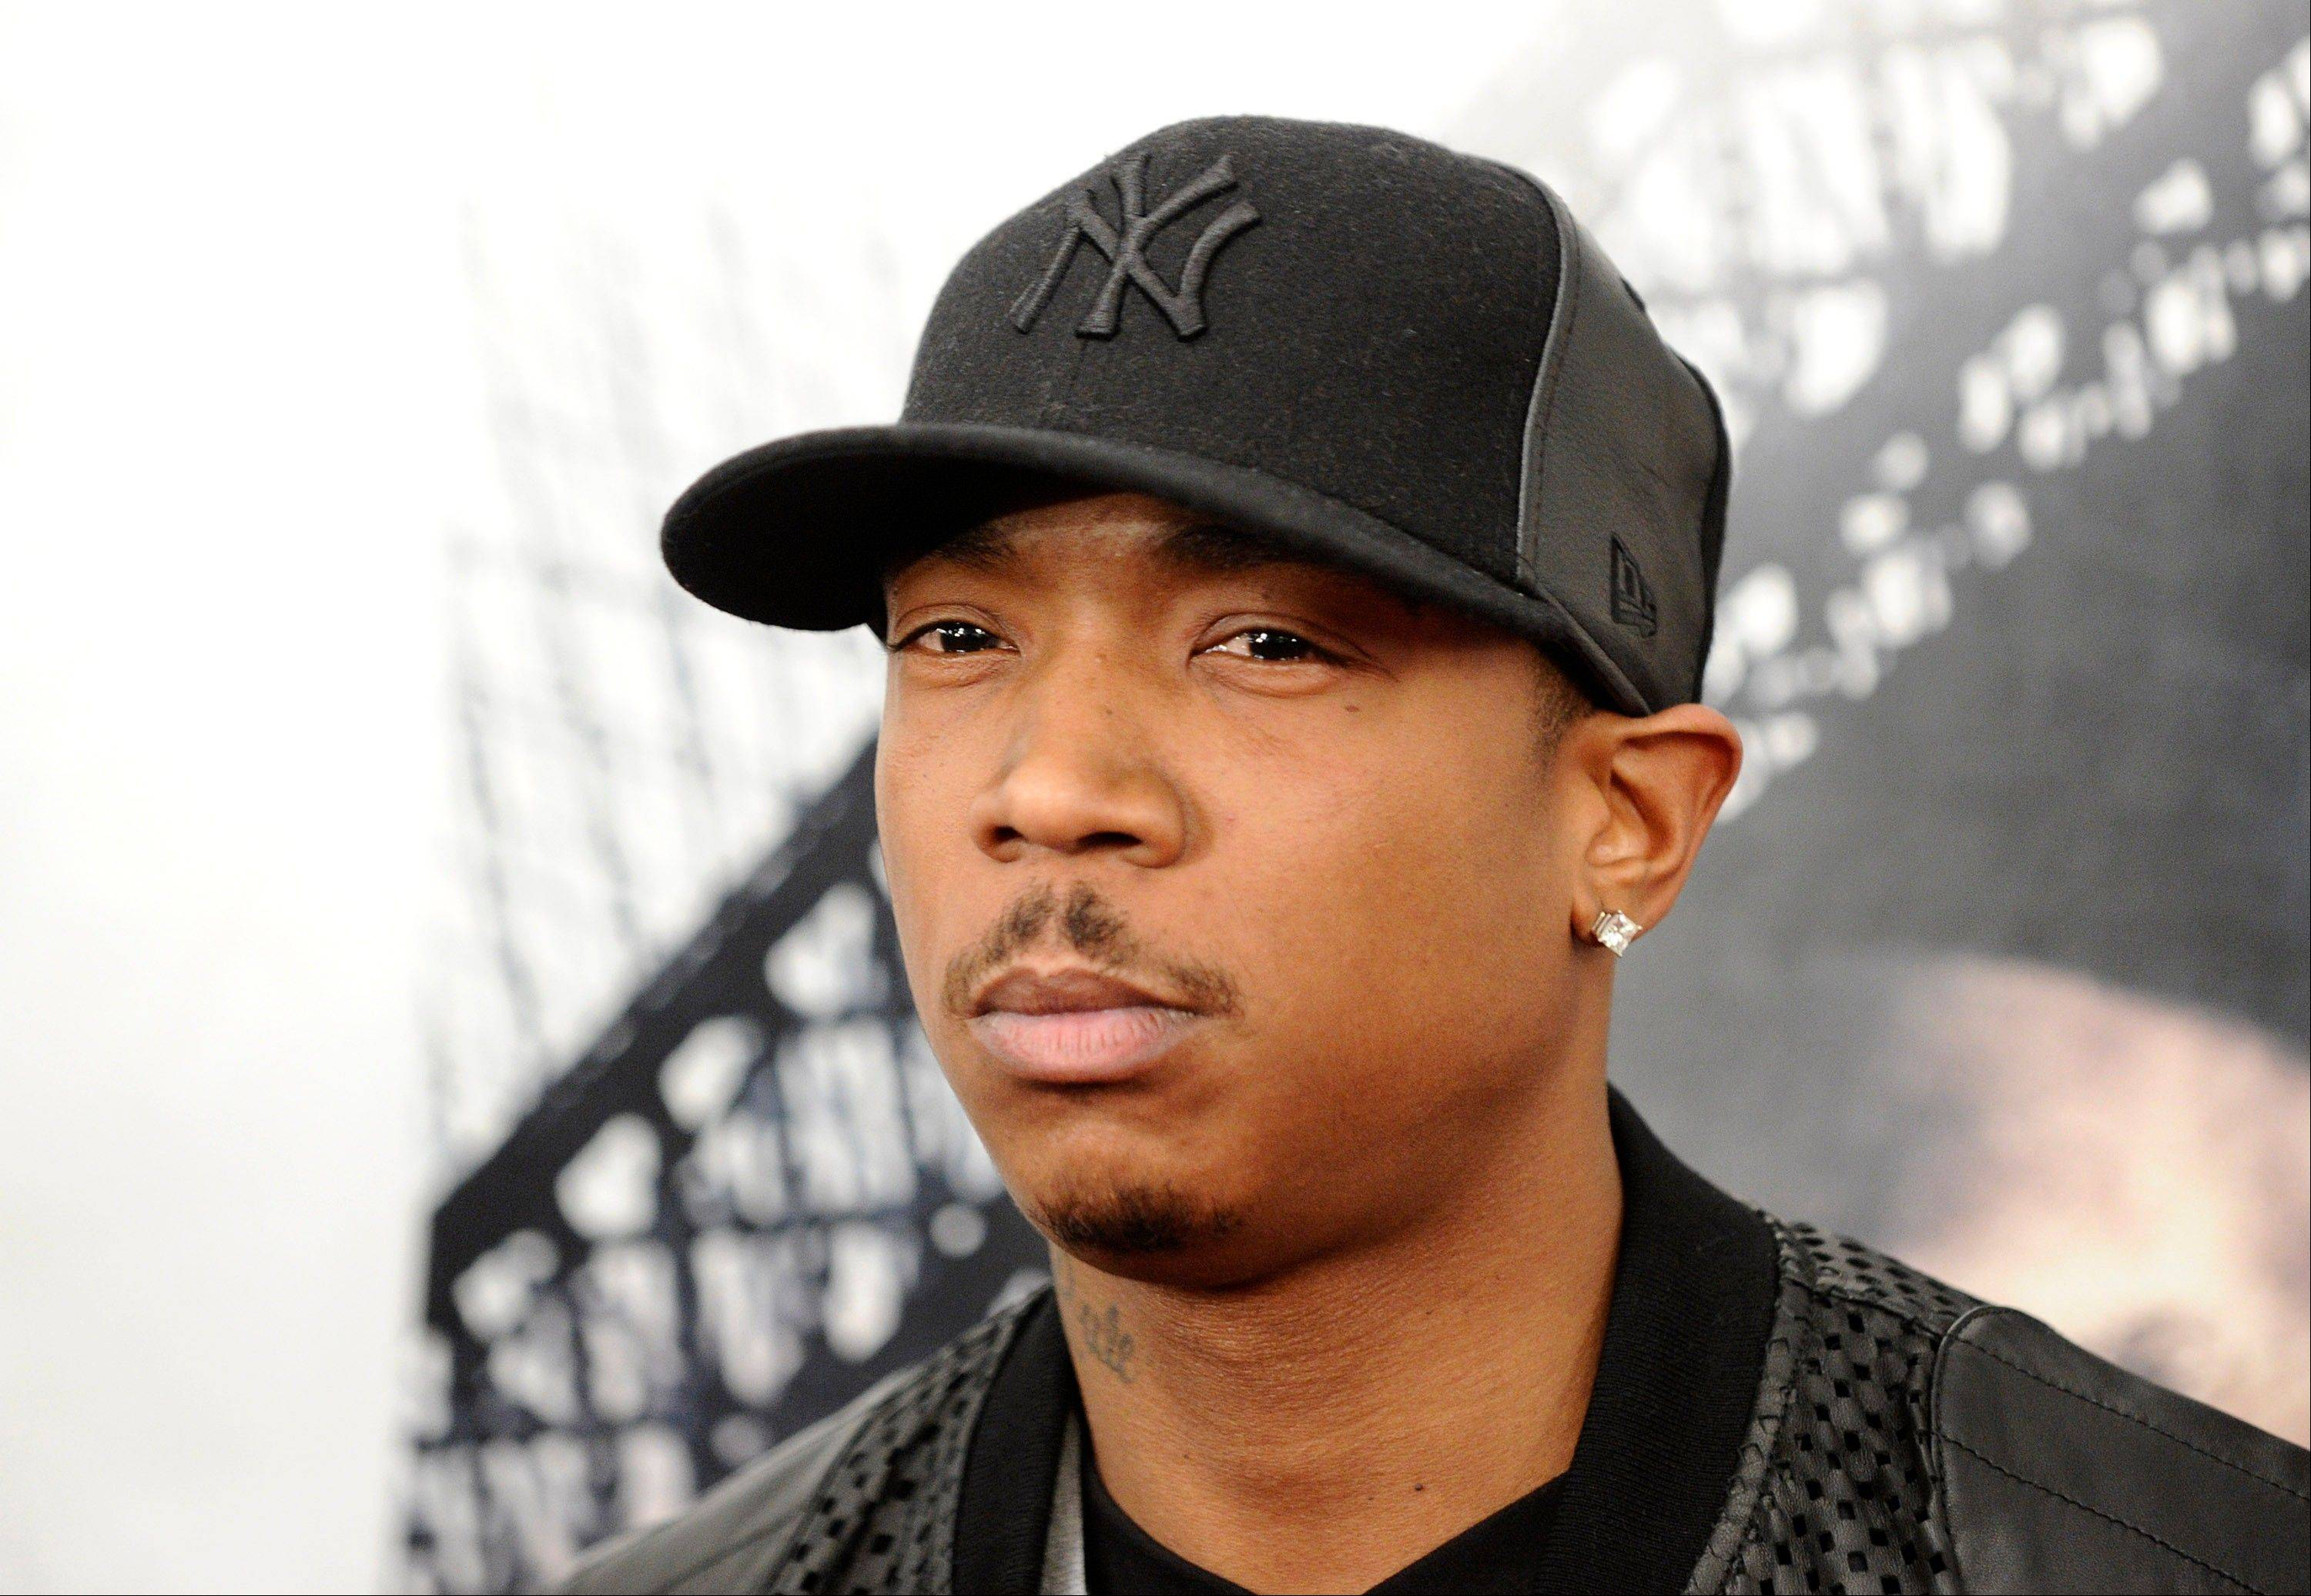 Platinum-selling rapper Ja Rule was set to leave an upstate New York prison on Thursday after serving most of his two-year sentence for illegal gun possession but head straight into federal custody in a tax case.